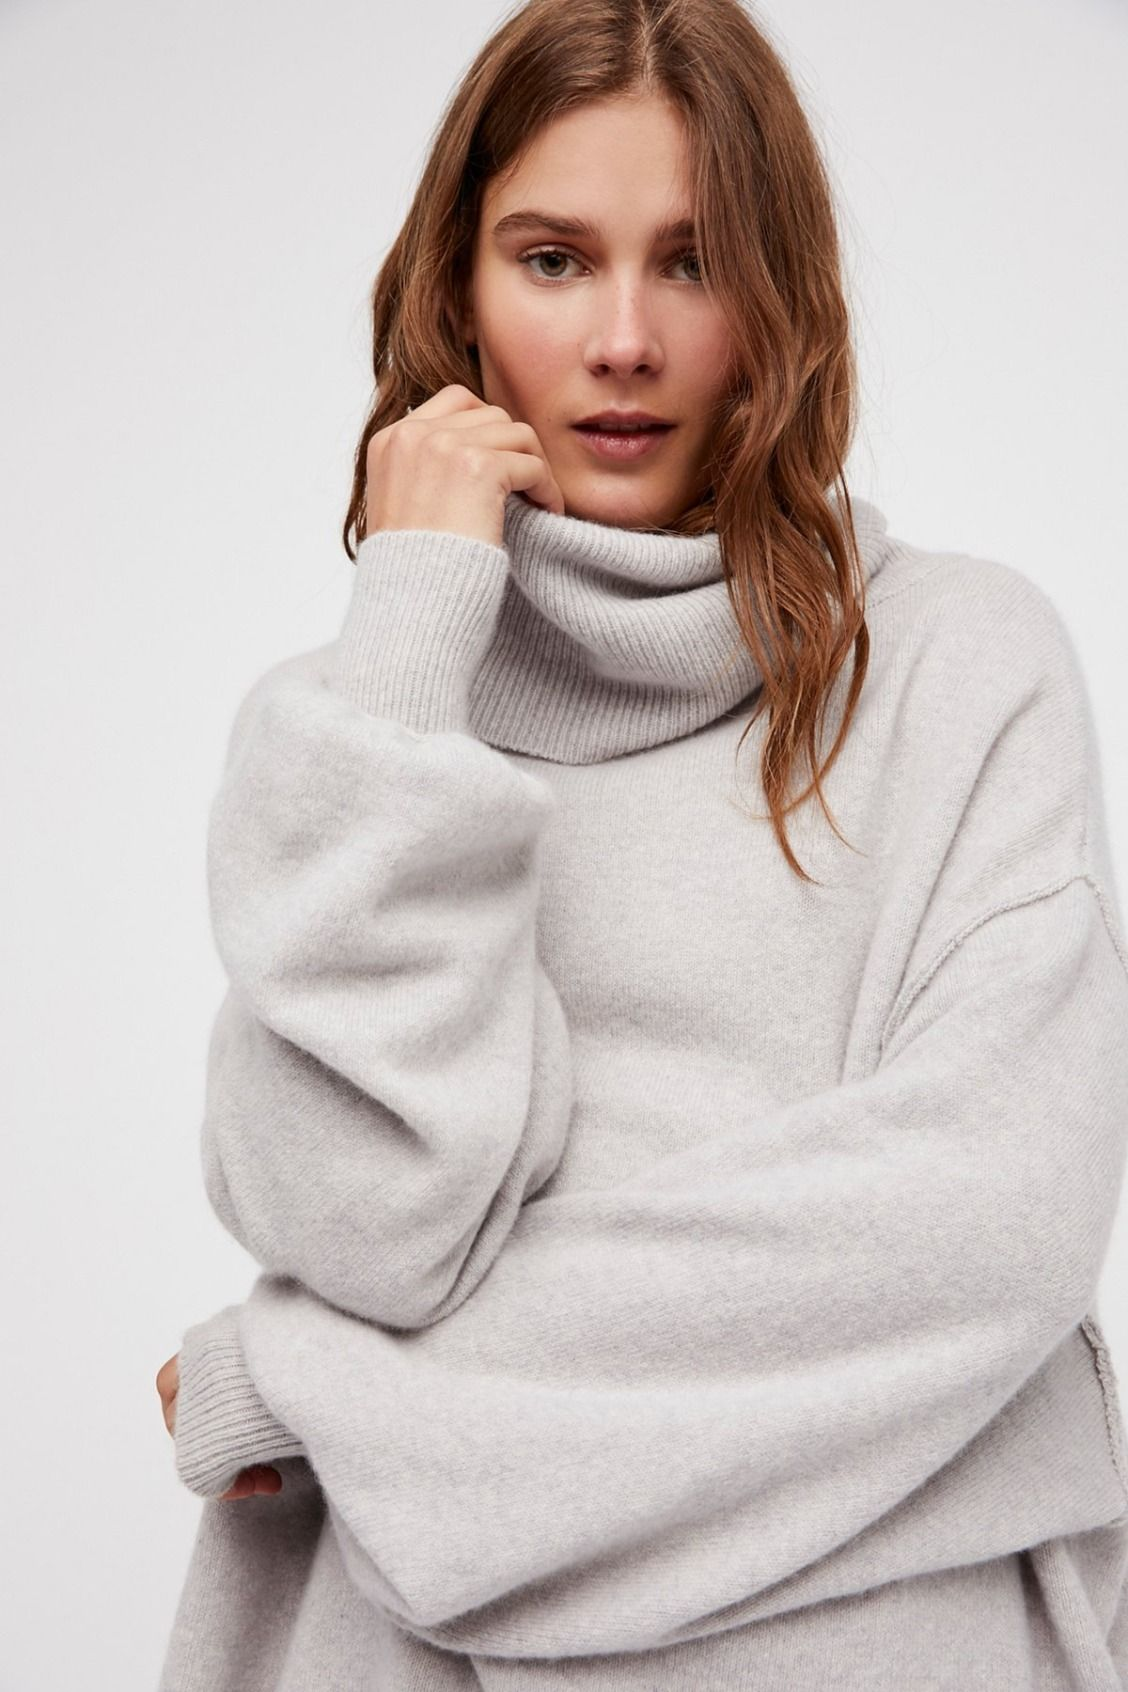 Keep A Secret Tunic | Super cozy oversized tunic sweater featured ...